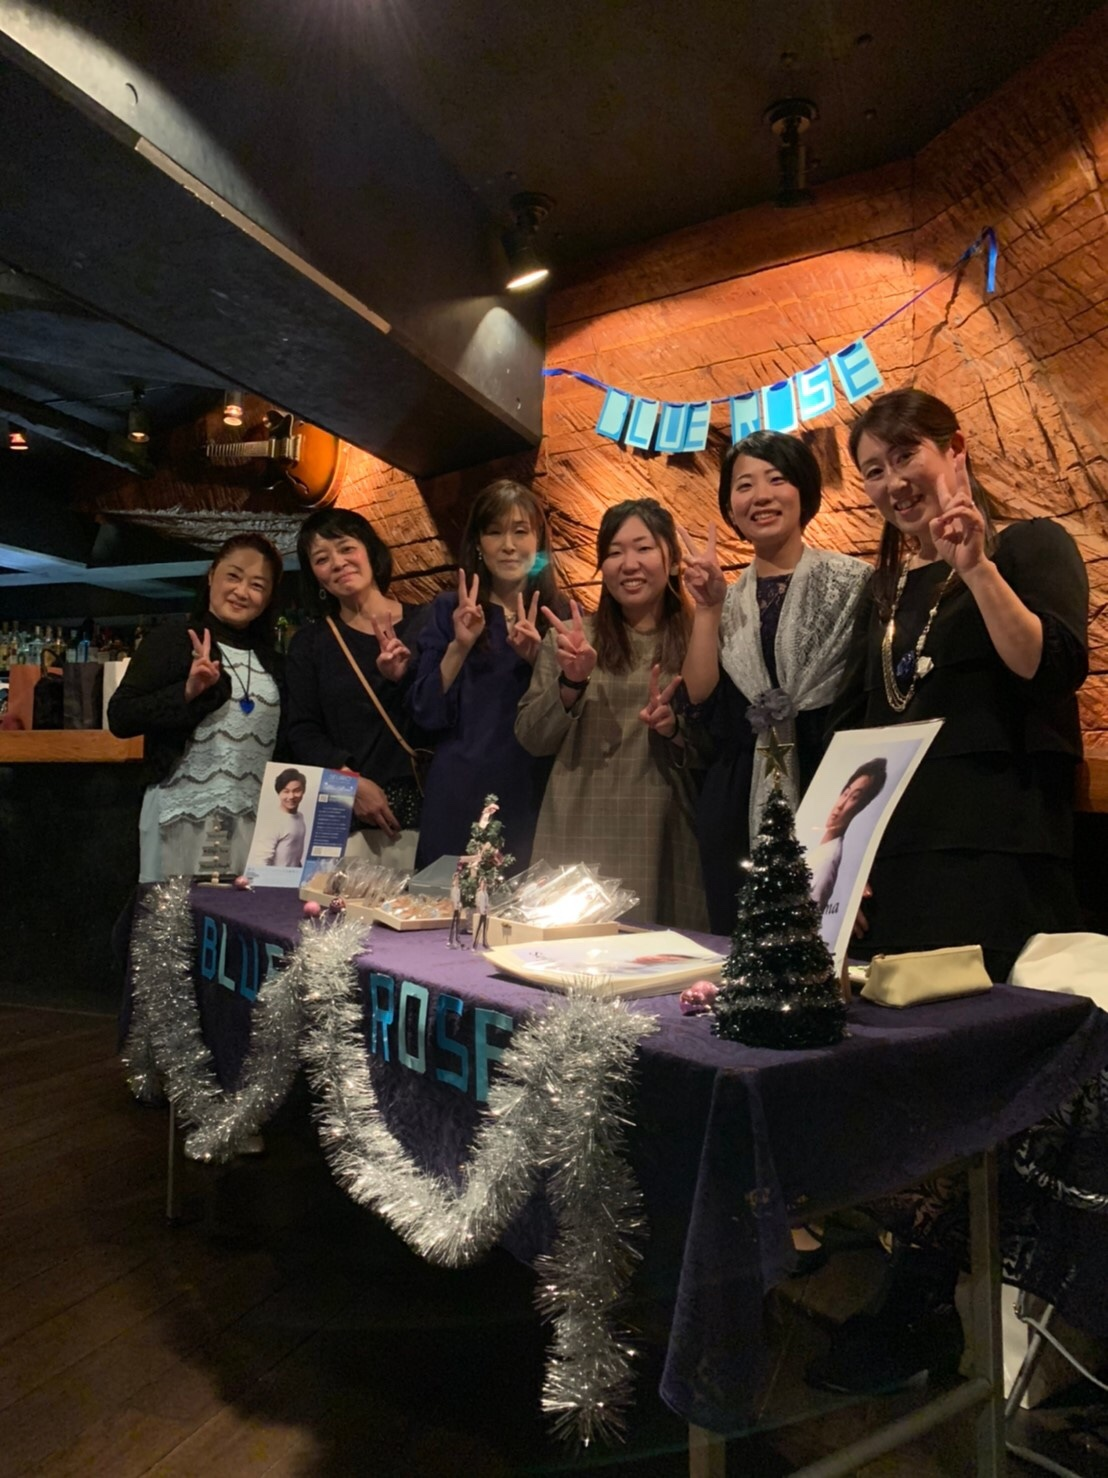 Seijiro Hazama Christmas & Birthdayソロライブ vol.4 @STAR PINES CAFE  12月21日(土)_a0157409_13324686.jpeg